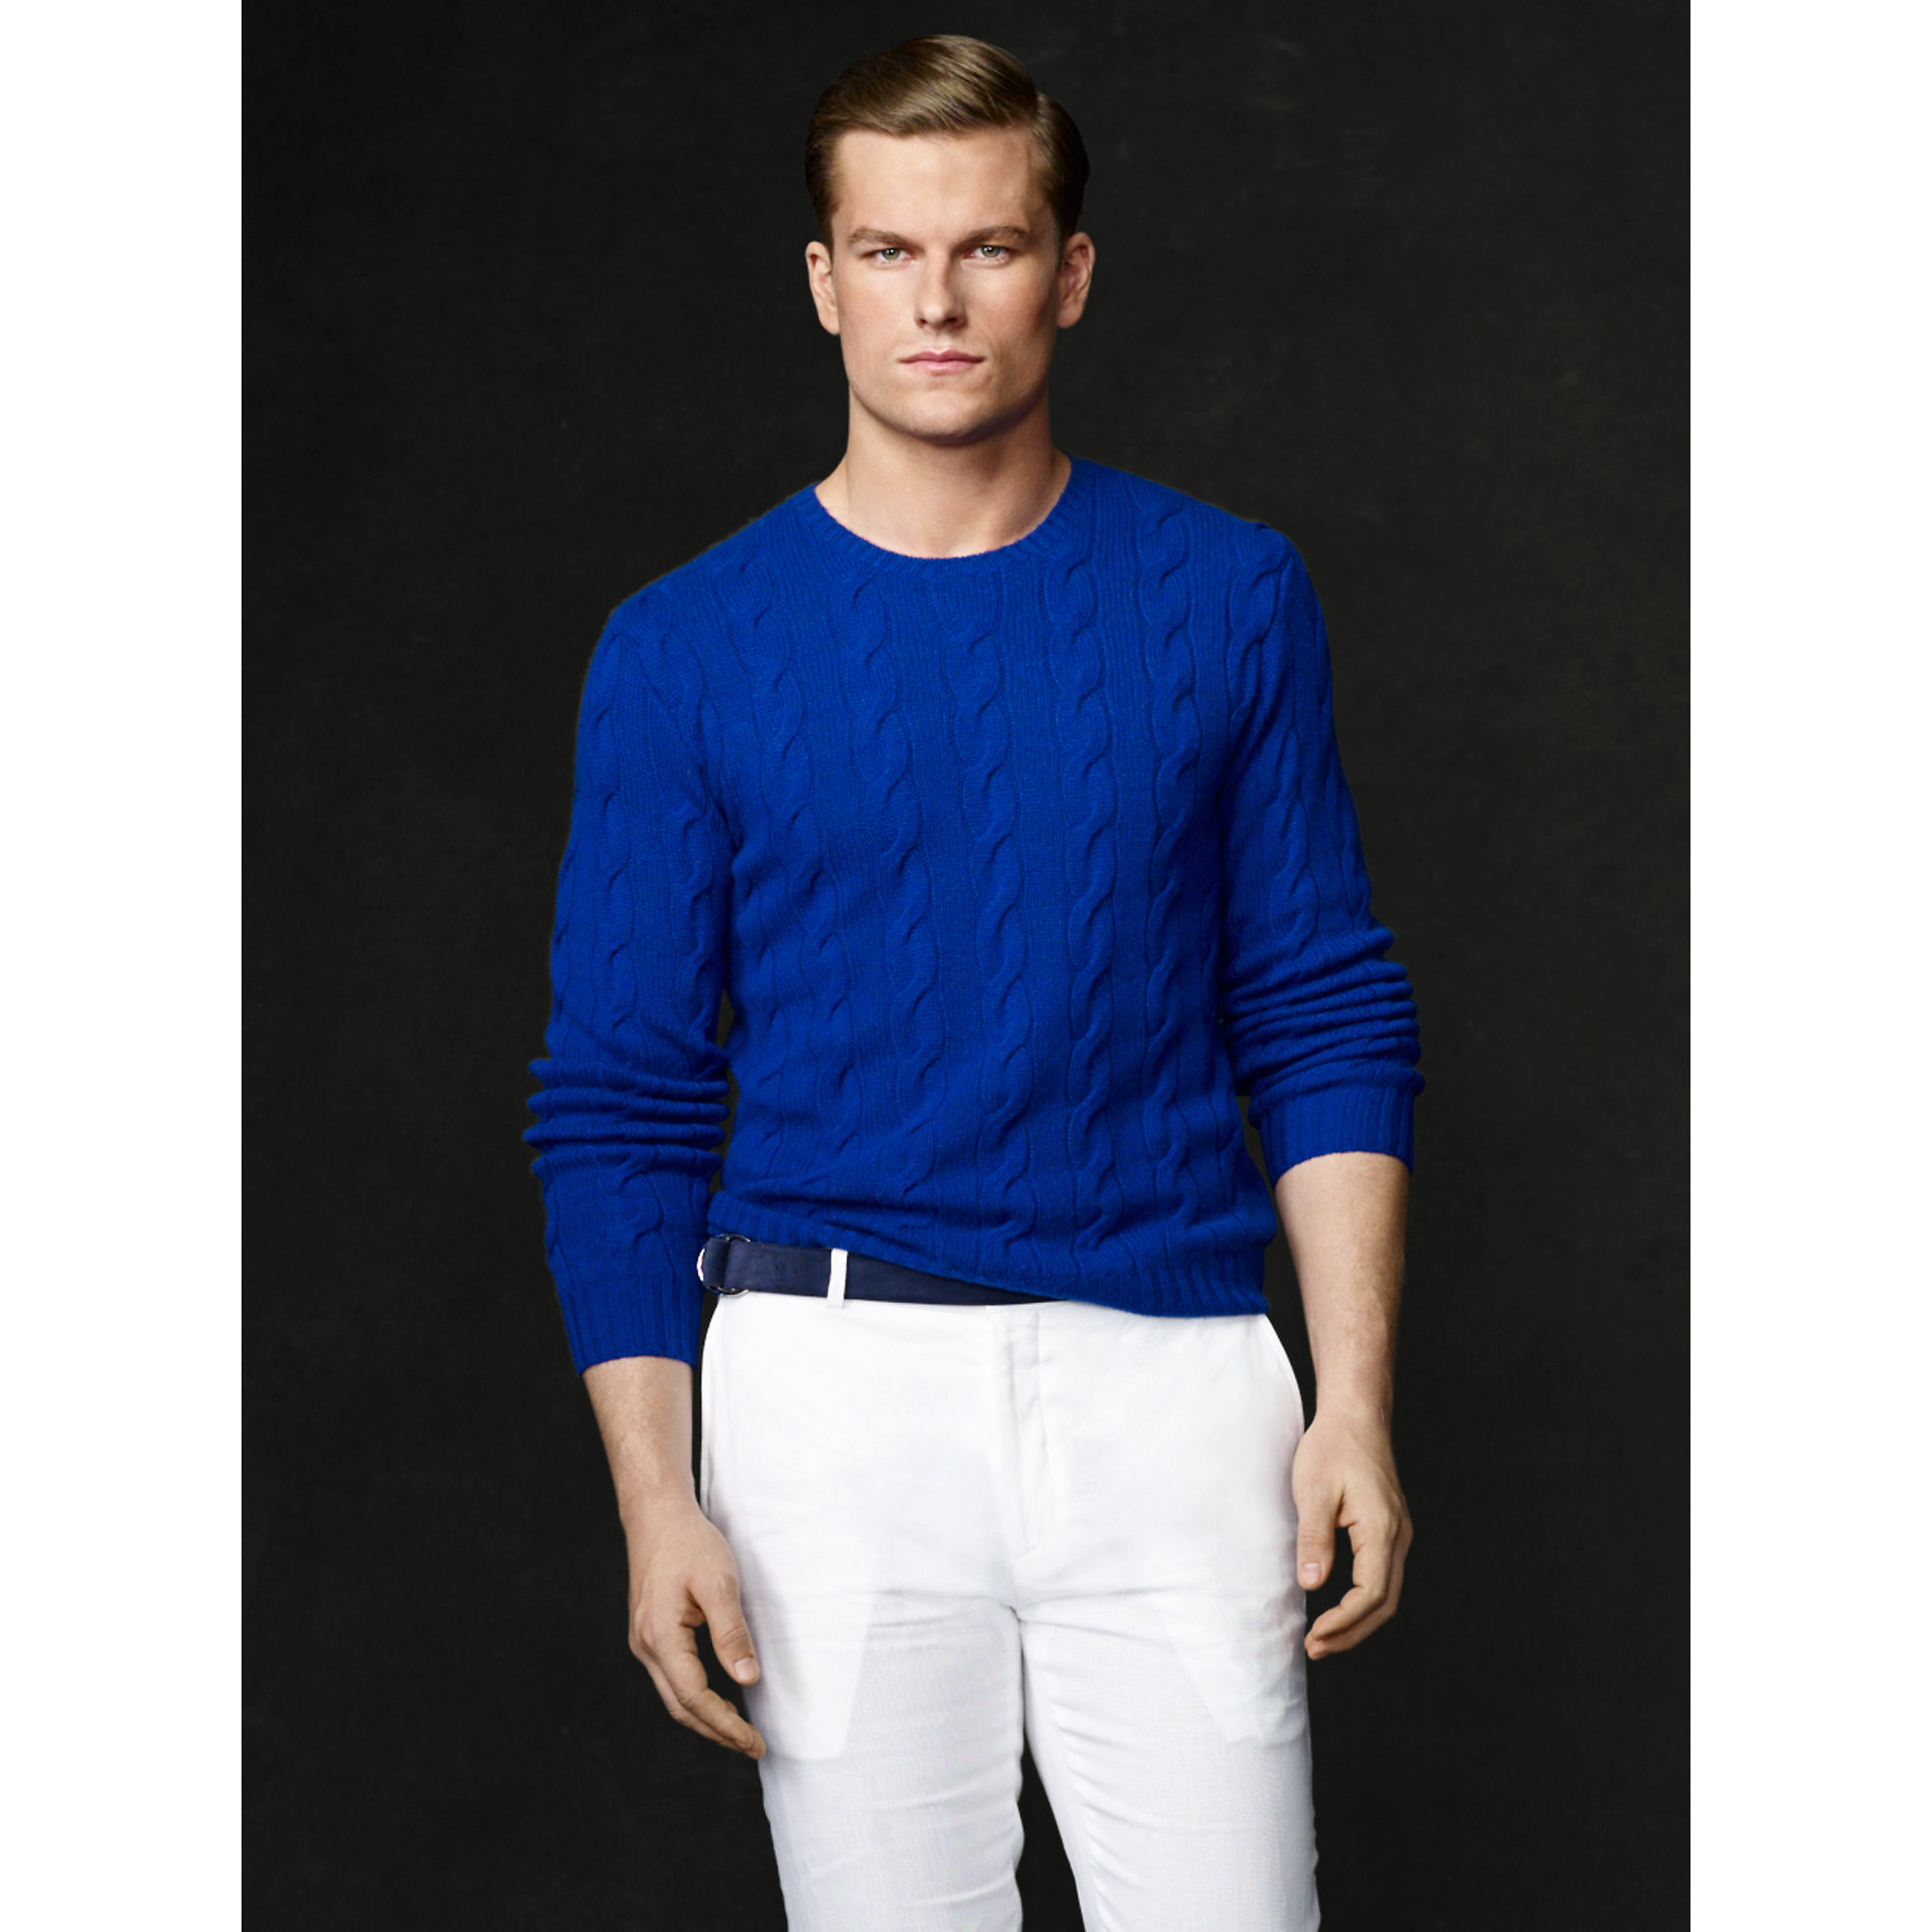 Cashmere Sweater Men Sale